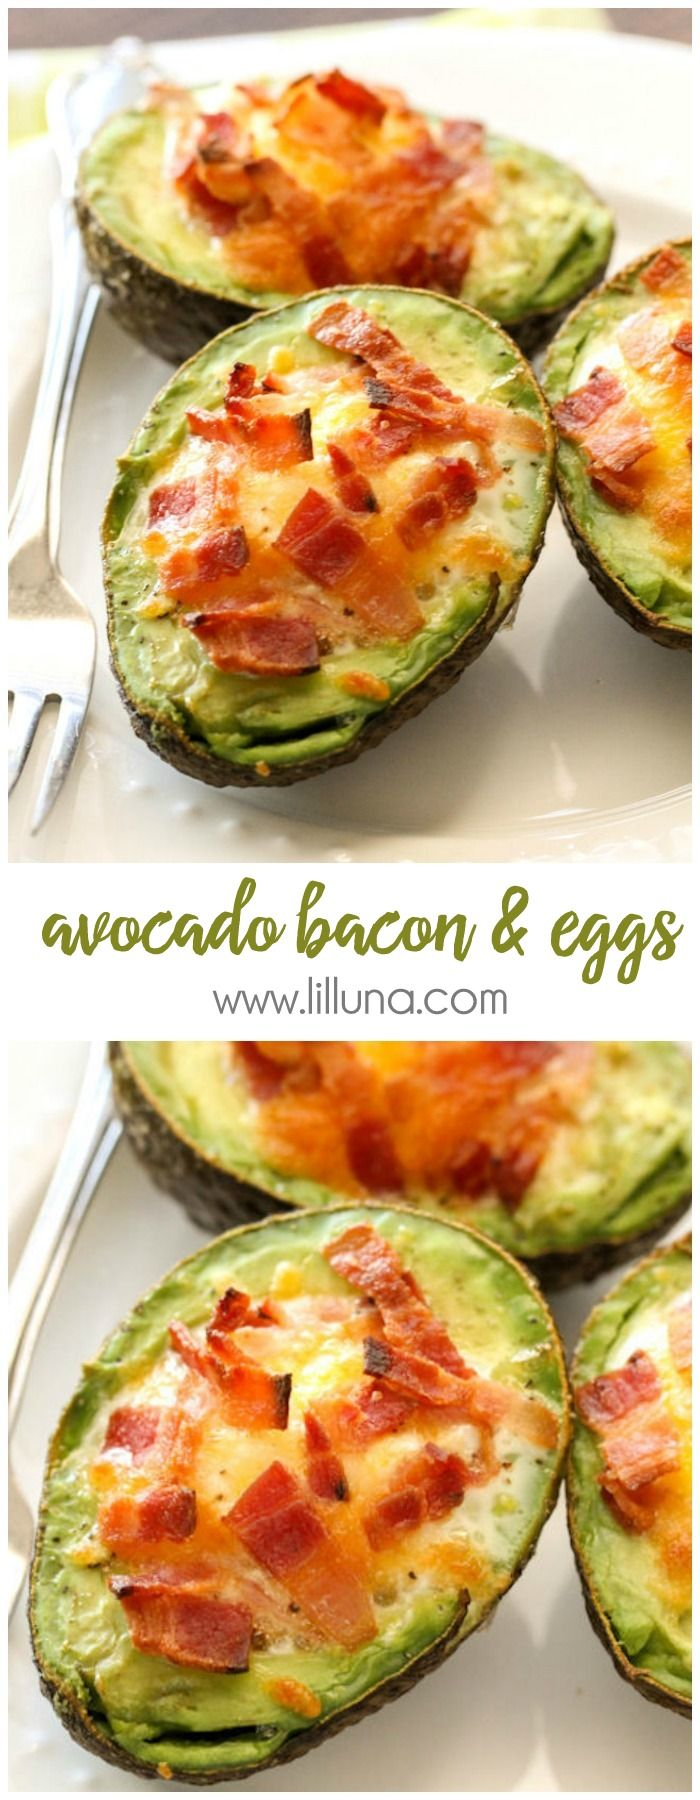 We love these Avocado Bacon and Eggs - they're so easy too! { lilluna.com } don't forget the egg